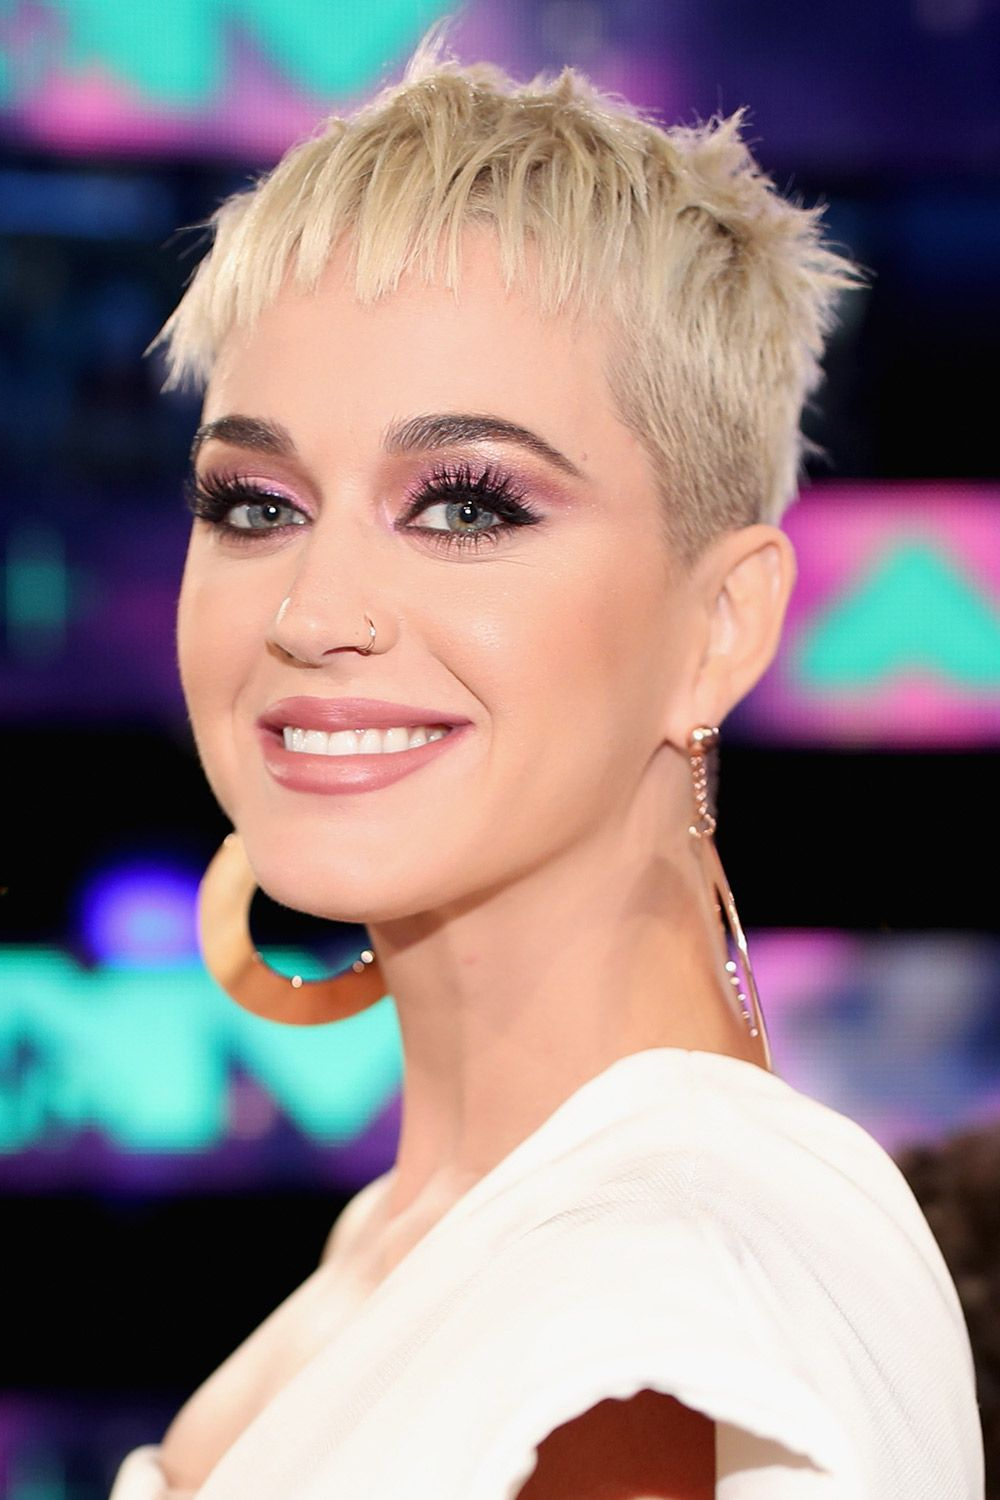 65 Best Short Hairstyles, Haircuts, And Short Hair Ideas For 2018 Inside Feminine Short Hairstyles For Women (View 9 of 25)